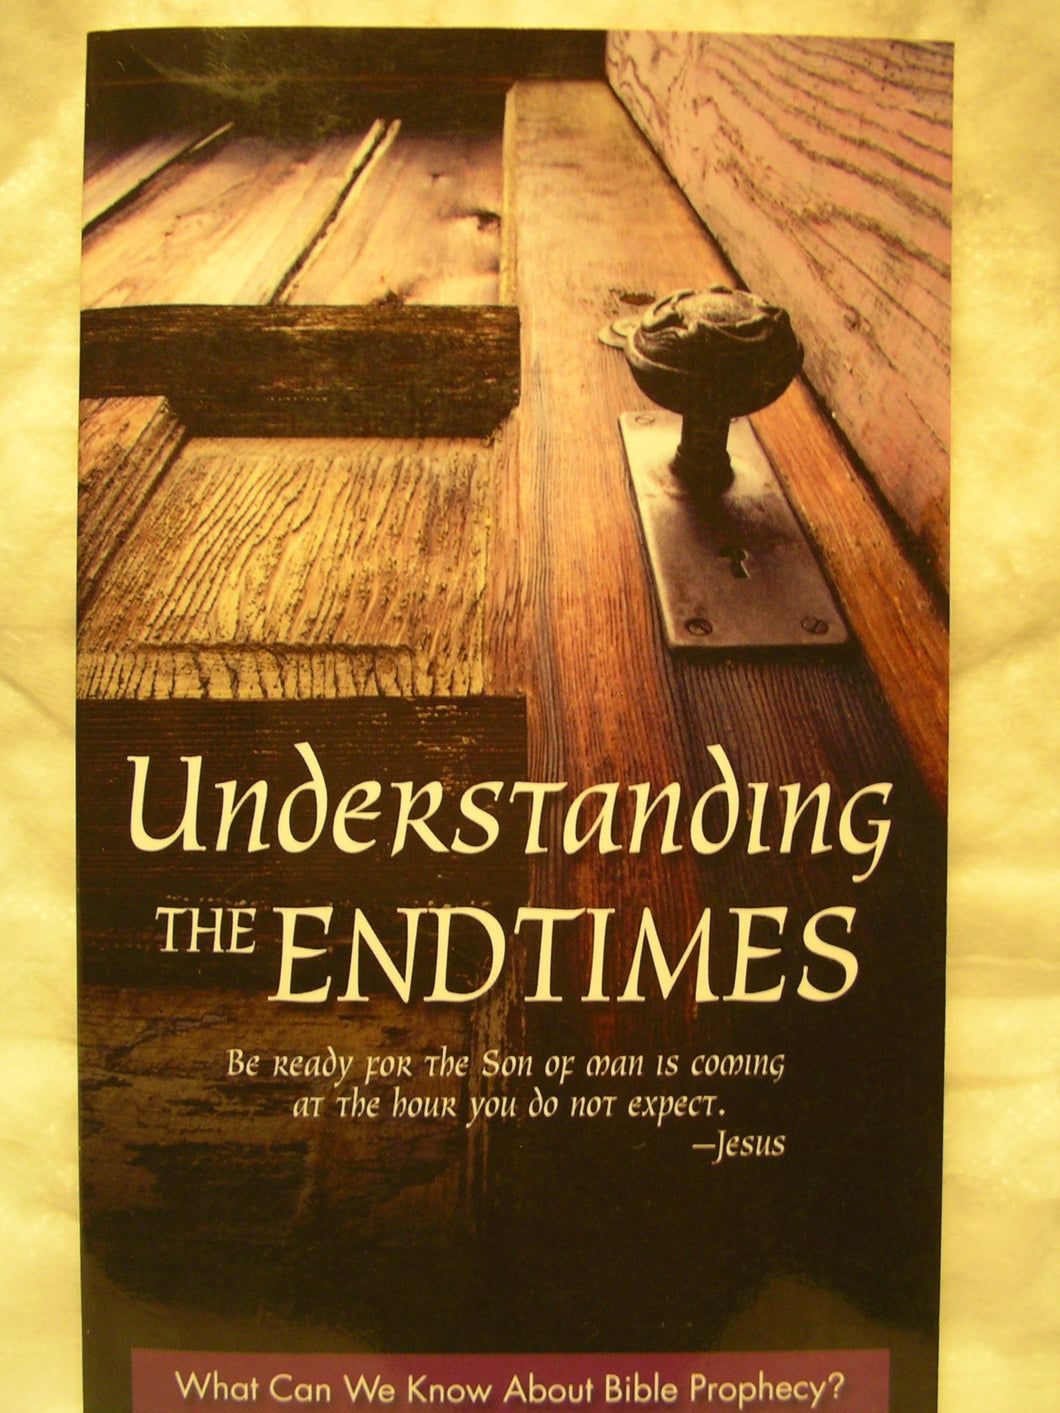 Understanding The Endtimes - What Can We Know About Bible Prophecy?